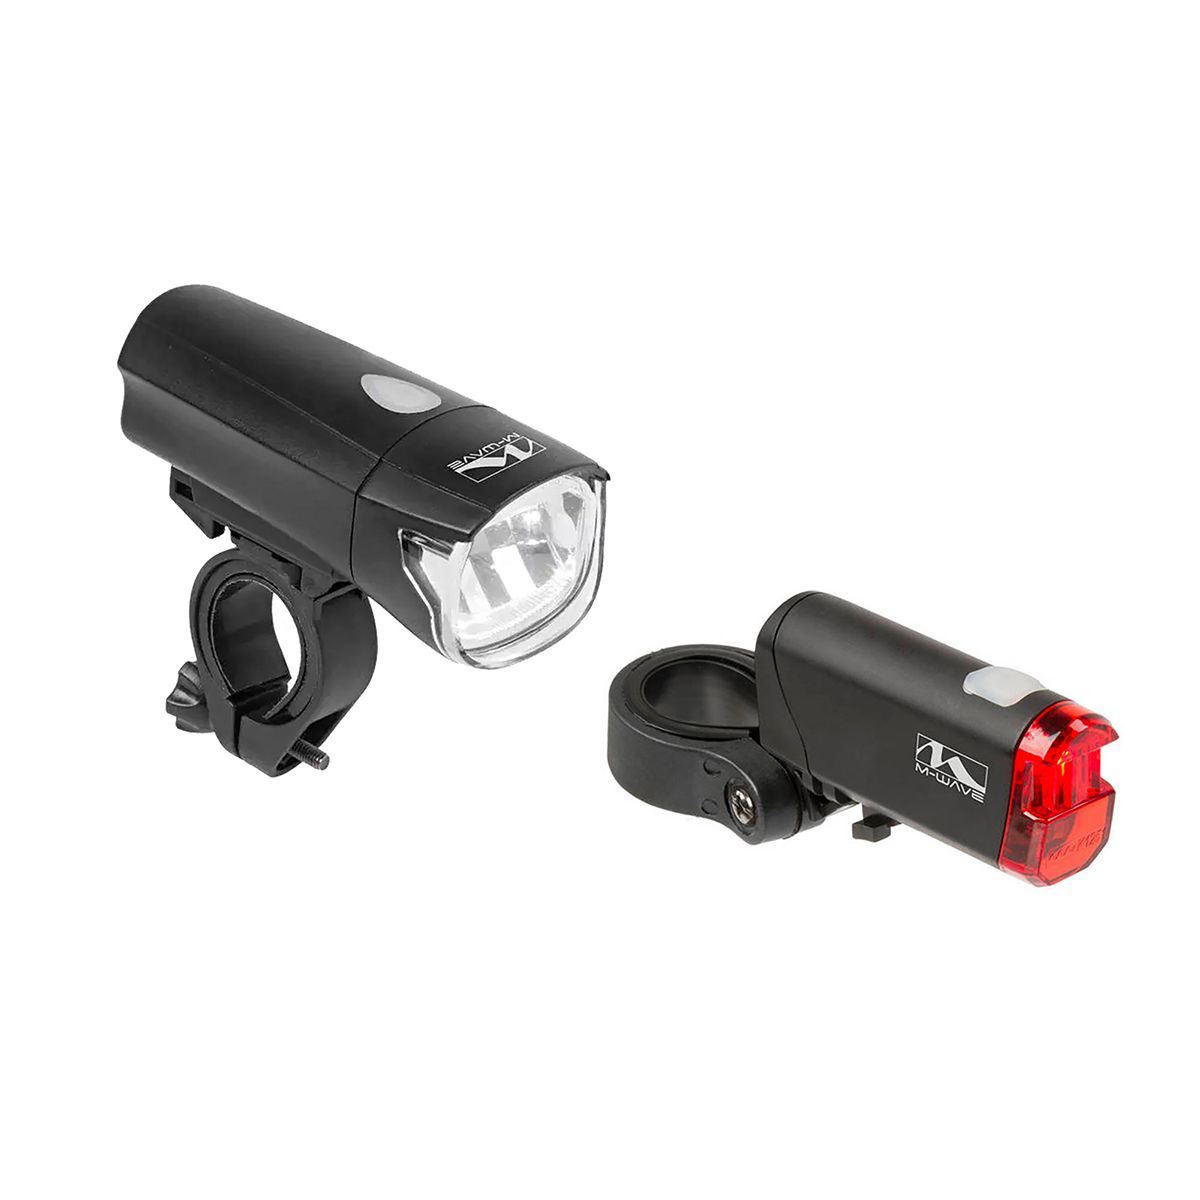 Atlas K50 battery-powered light set